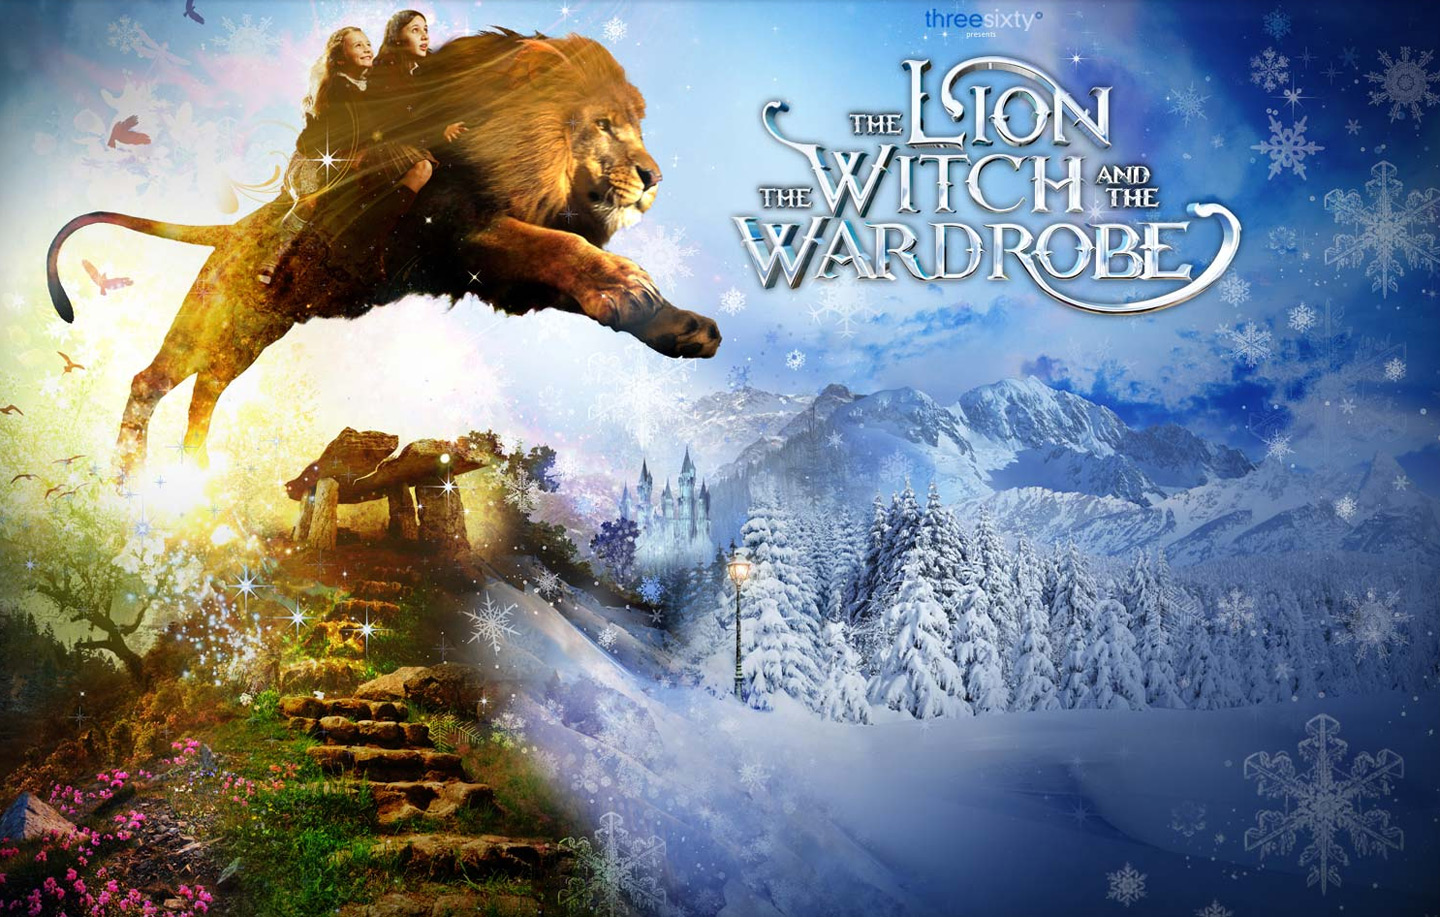 the lion the witch and the wardrobe The lion, the witch, and the wardrobe is an action-packed play based on the  works of cs lewis depicts fight between aslan, the great ruler of.